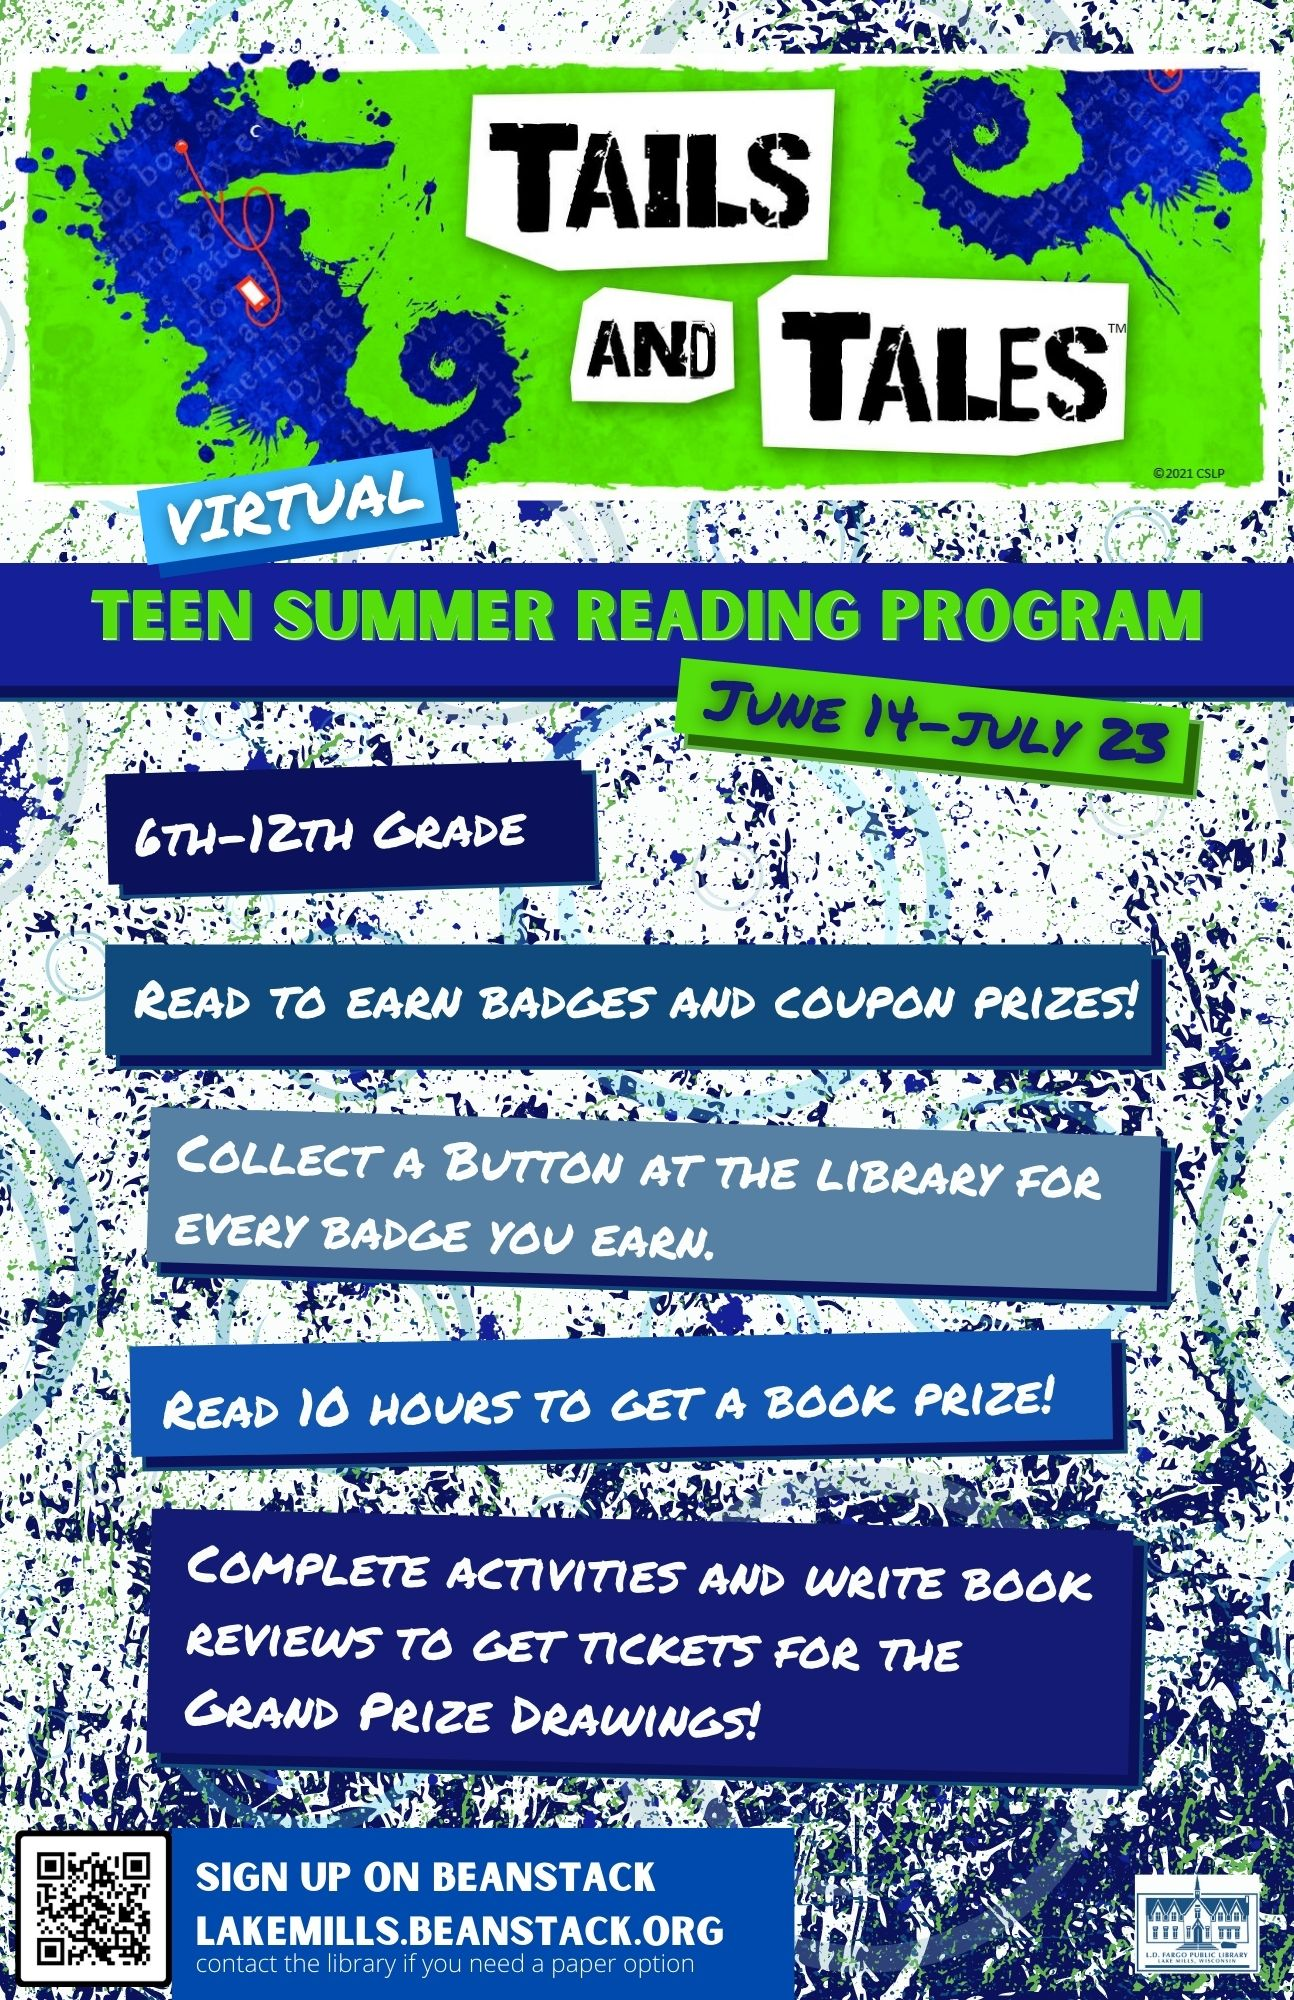 Virtual Teen Summer Reading Program June 14-July 23! 6th-12th Grade.  Read to earn badges and coupon prizes! Collect a button at the library for every badge you earn.   Read 10 hours to get a book prize! Complete activities and write book reviews to get tickets for the Grand Prize Drawings! Simply sign up on Beanstack or use the app available through iOS and Android.